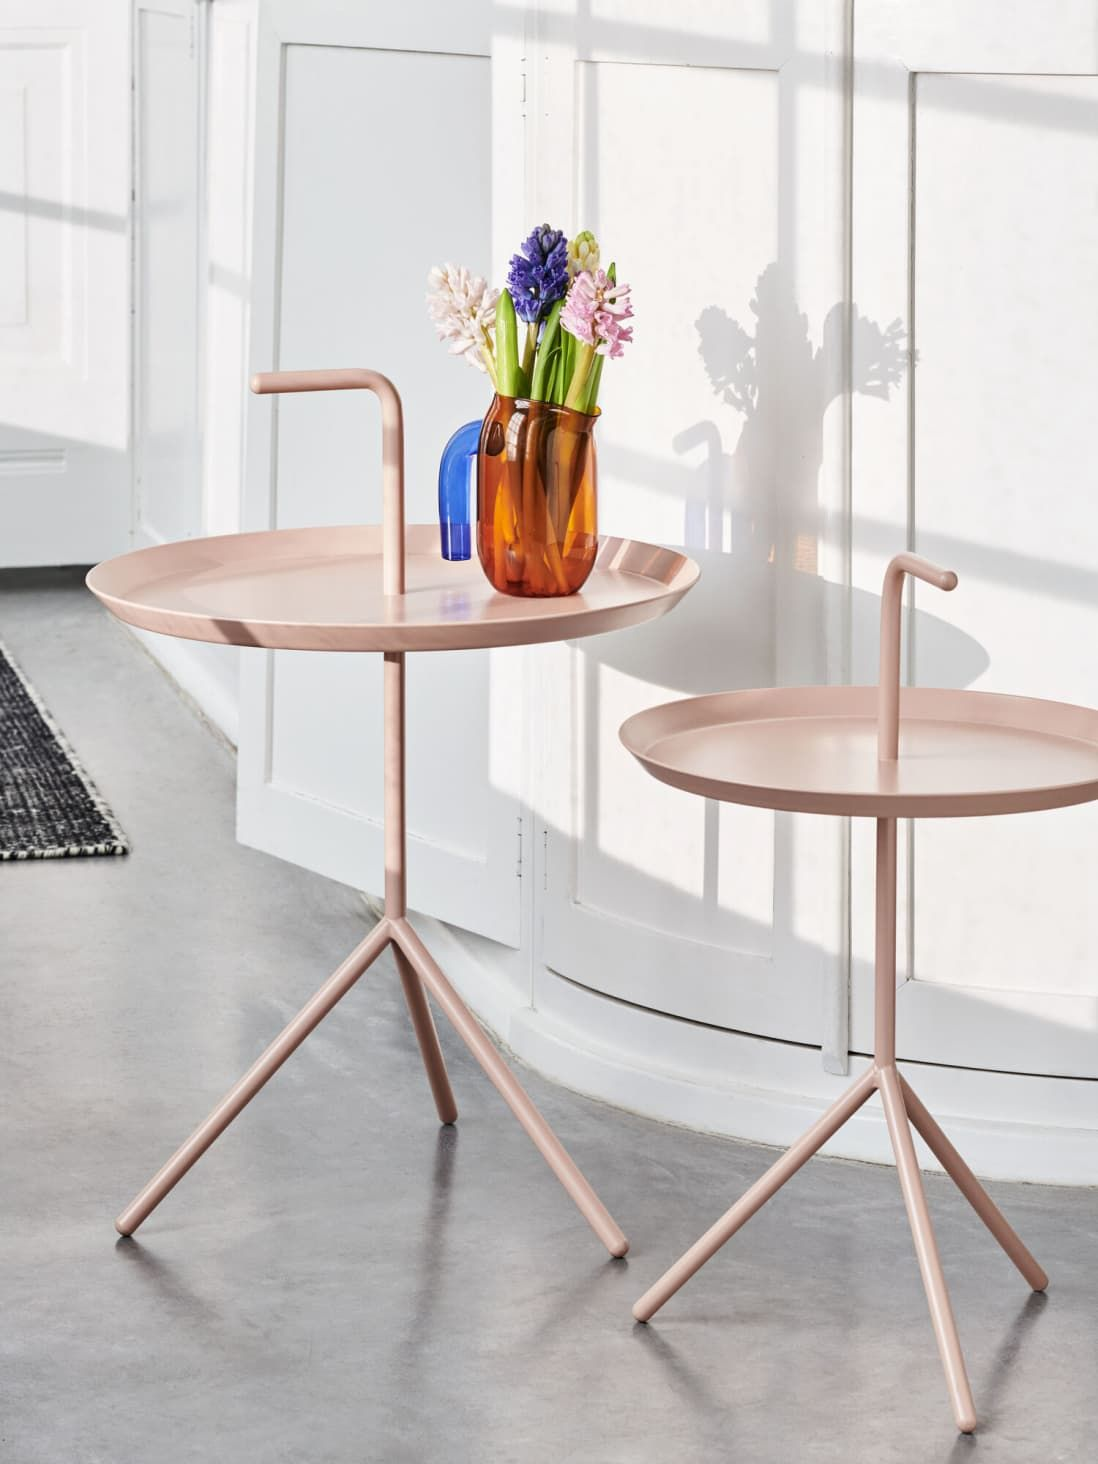 20 Best Modern Furniture Stores That Aren T Ikea Apartment Therapy In 2020 Danish Inspired Furniture Side Table Traditional Coffee Table